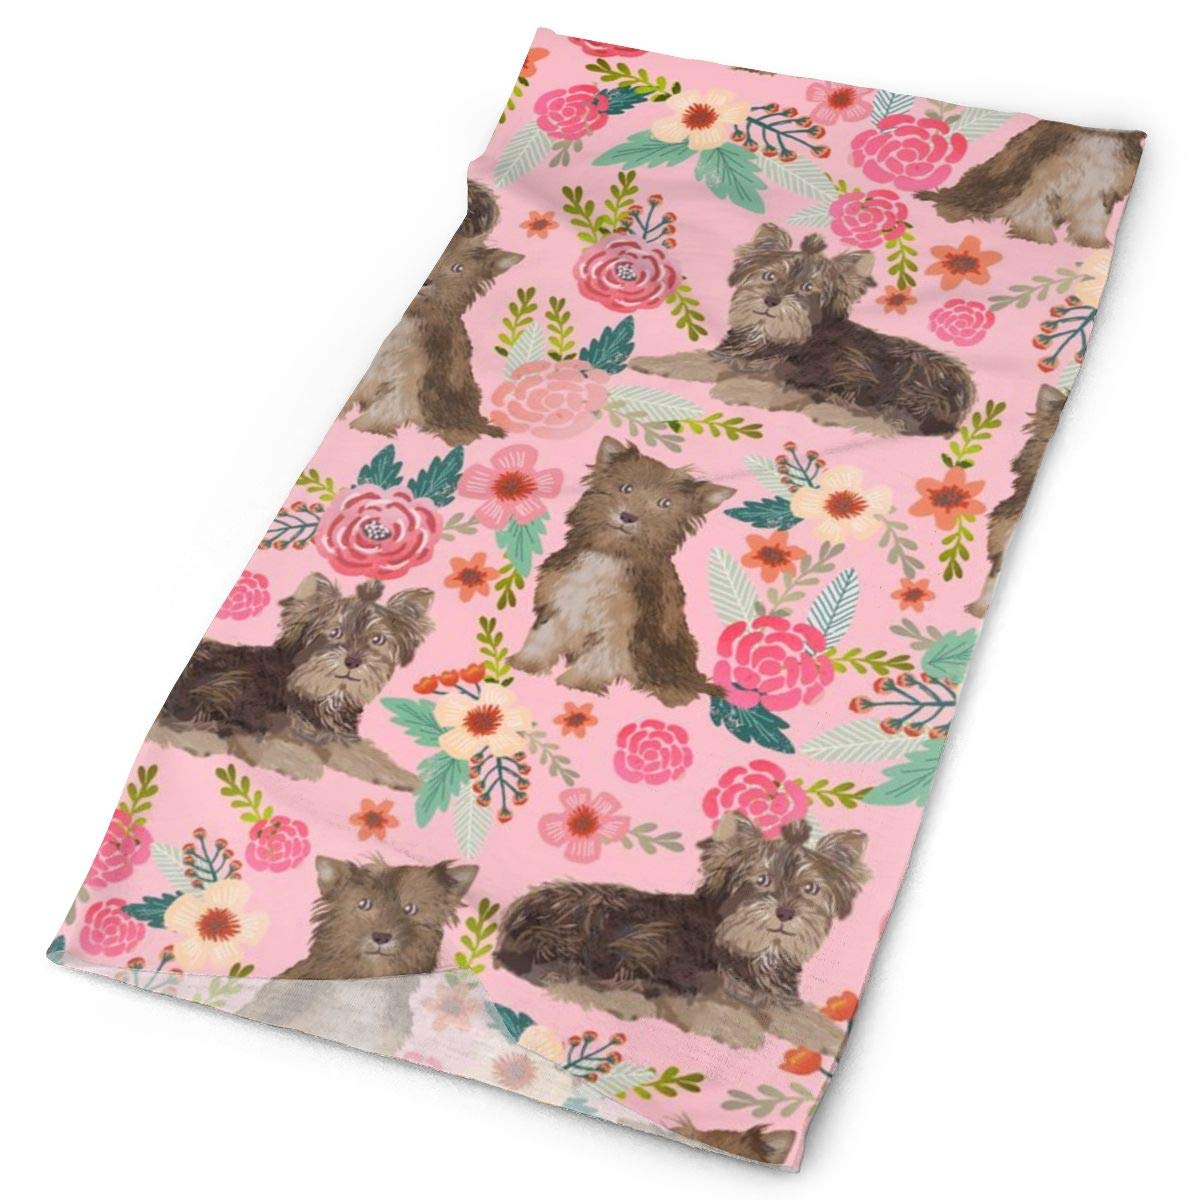 Chocolate Yorkie Fabric Vintage Florals Fabric Yorkshire Terrier Fabrics Cute Florals Fabric Headbands Bandana Cap Scarf Face